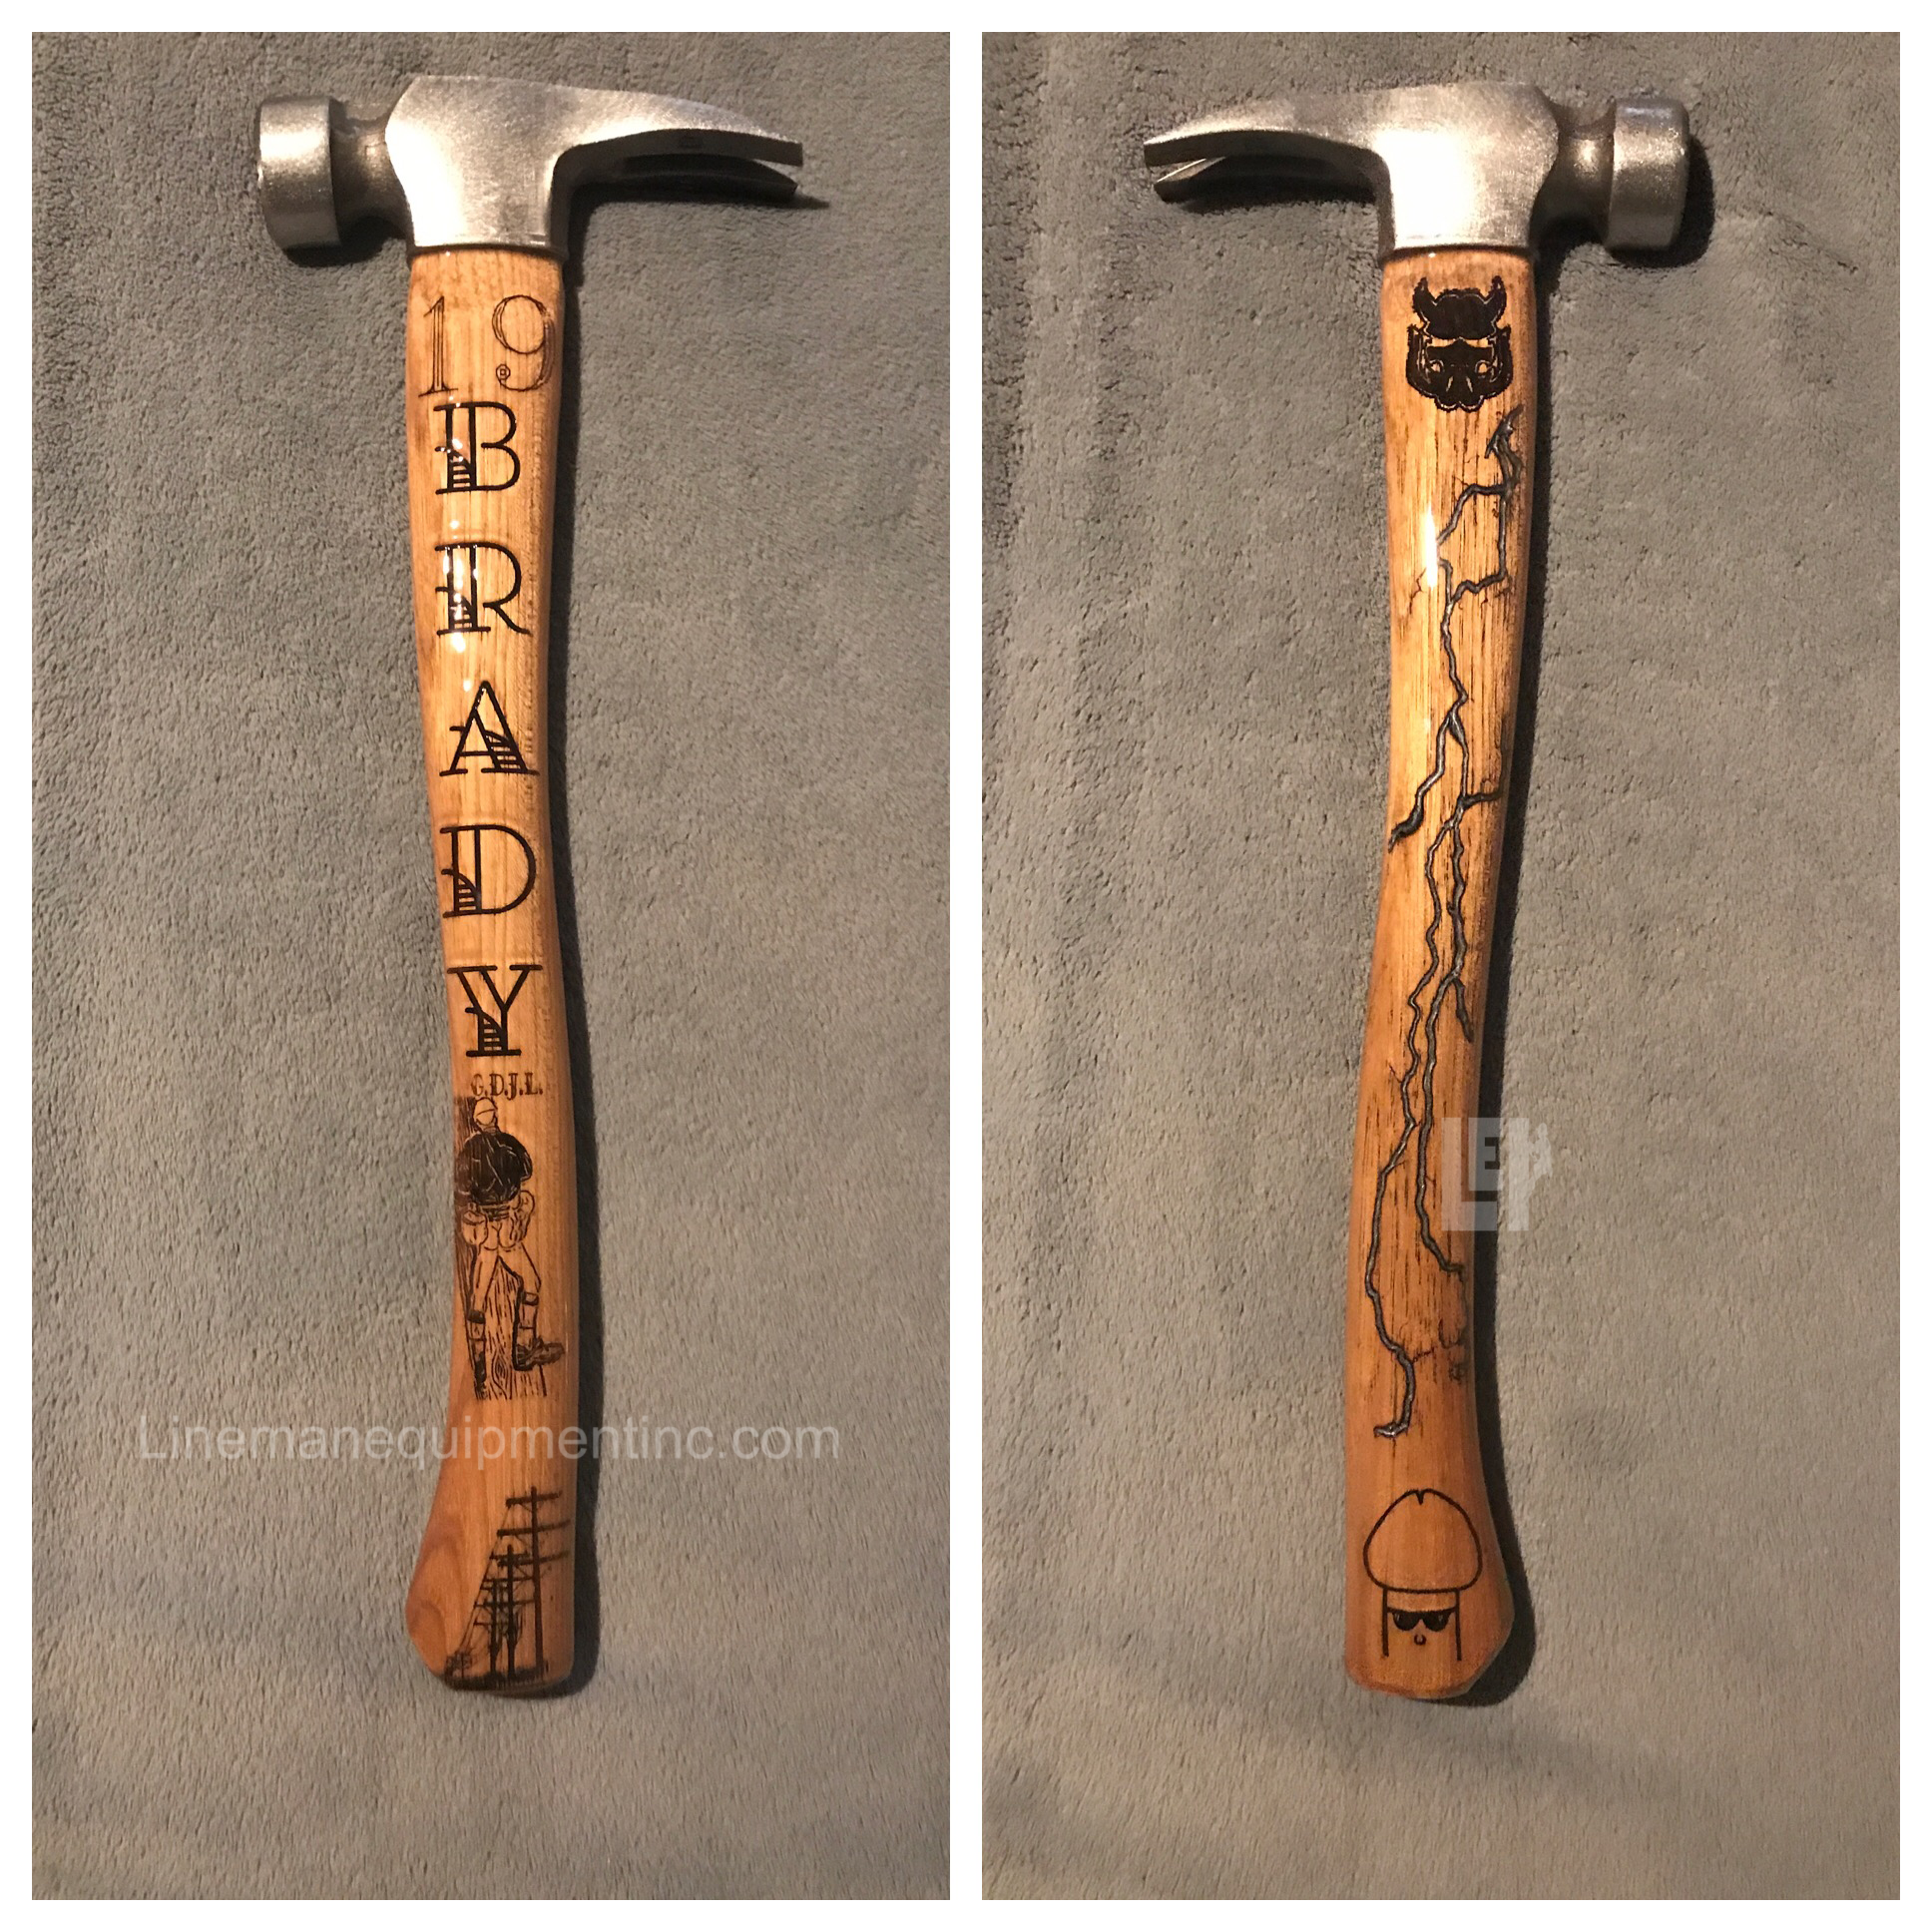 Just Some Of The Custom Hammer Handles We Have Made For Our Customers If You Dream It We Can Make It Madeinamerica Lig Hammer Handles Hammer Framing Hammer